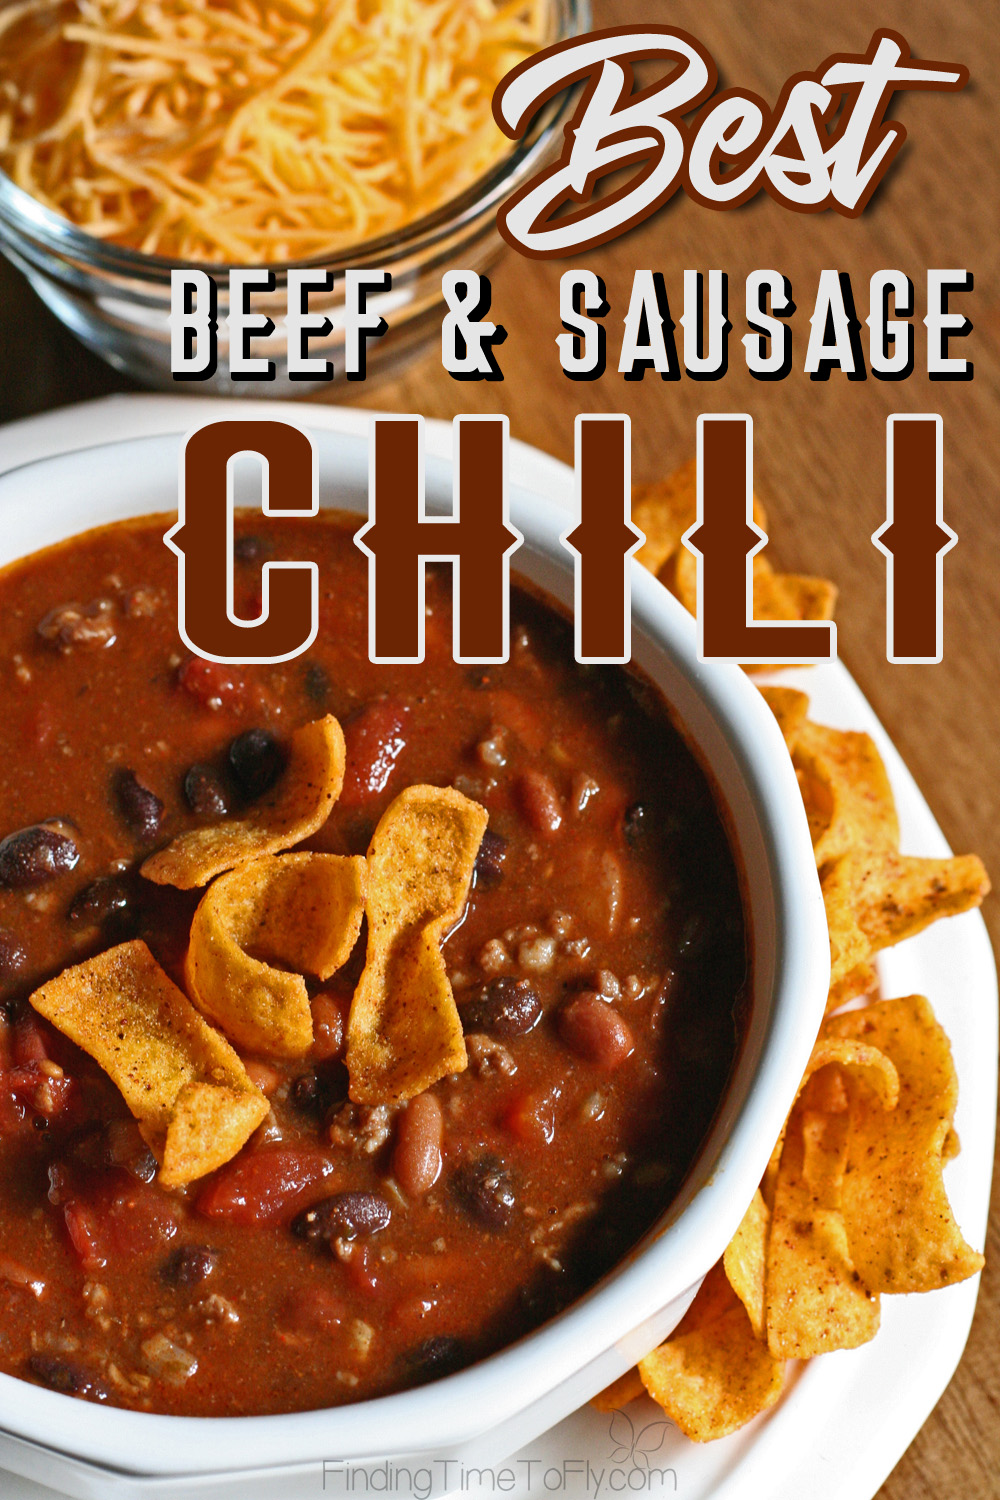 The Best Beef and Sausage Chili recipe was created by studying numerous award winning chili recipes. We chose our favorite ingredients, and this chili was born!